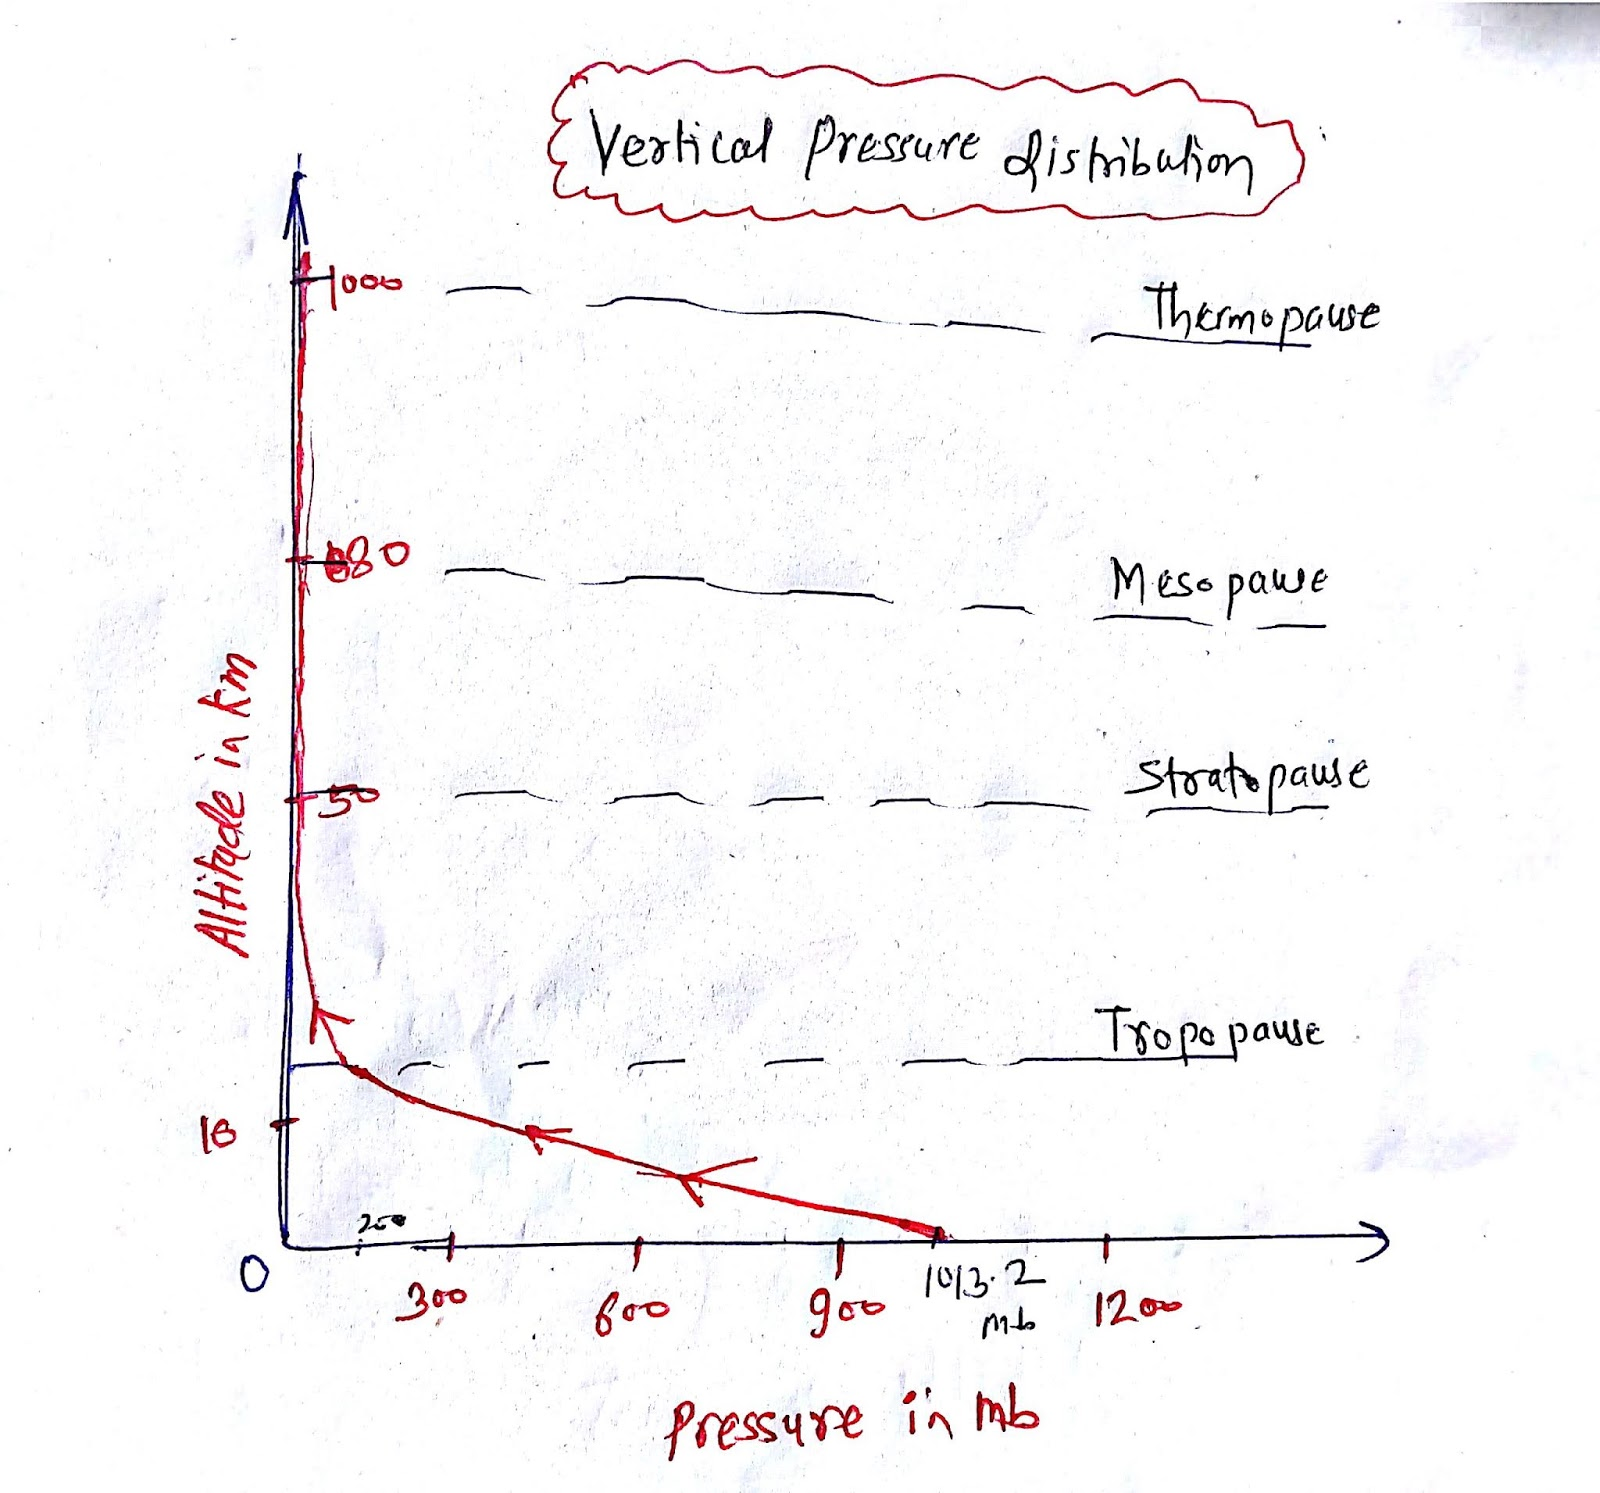 Atmospheric Pressure And Their Distributions Climatology